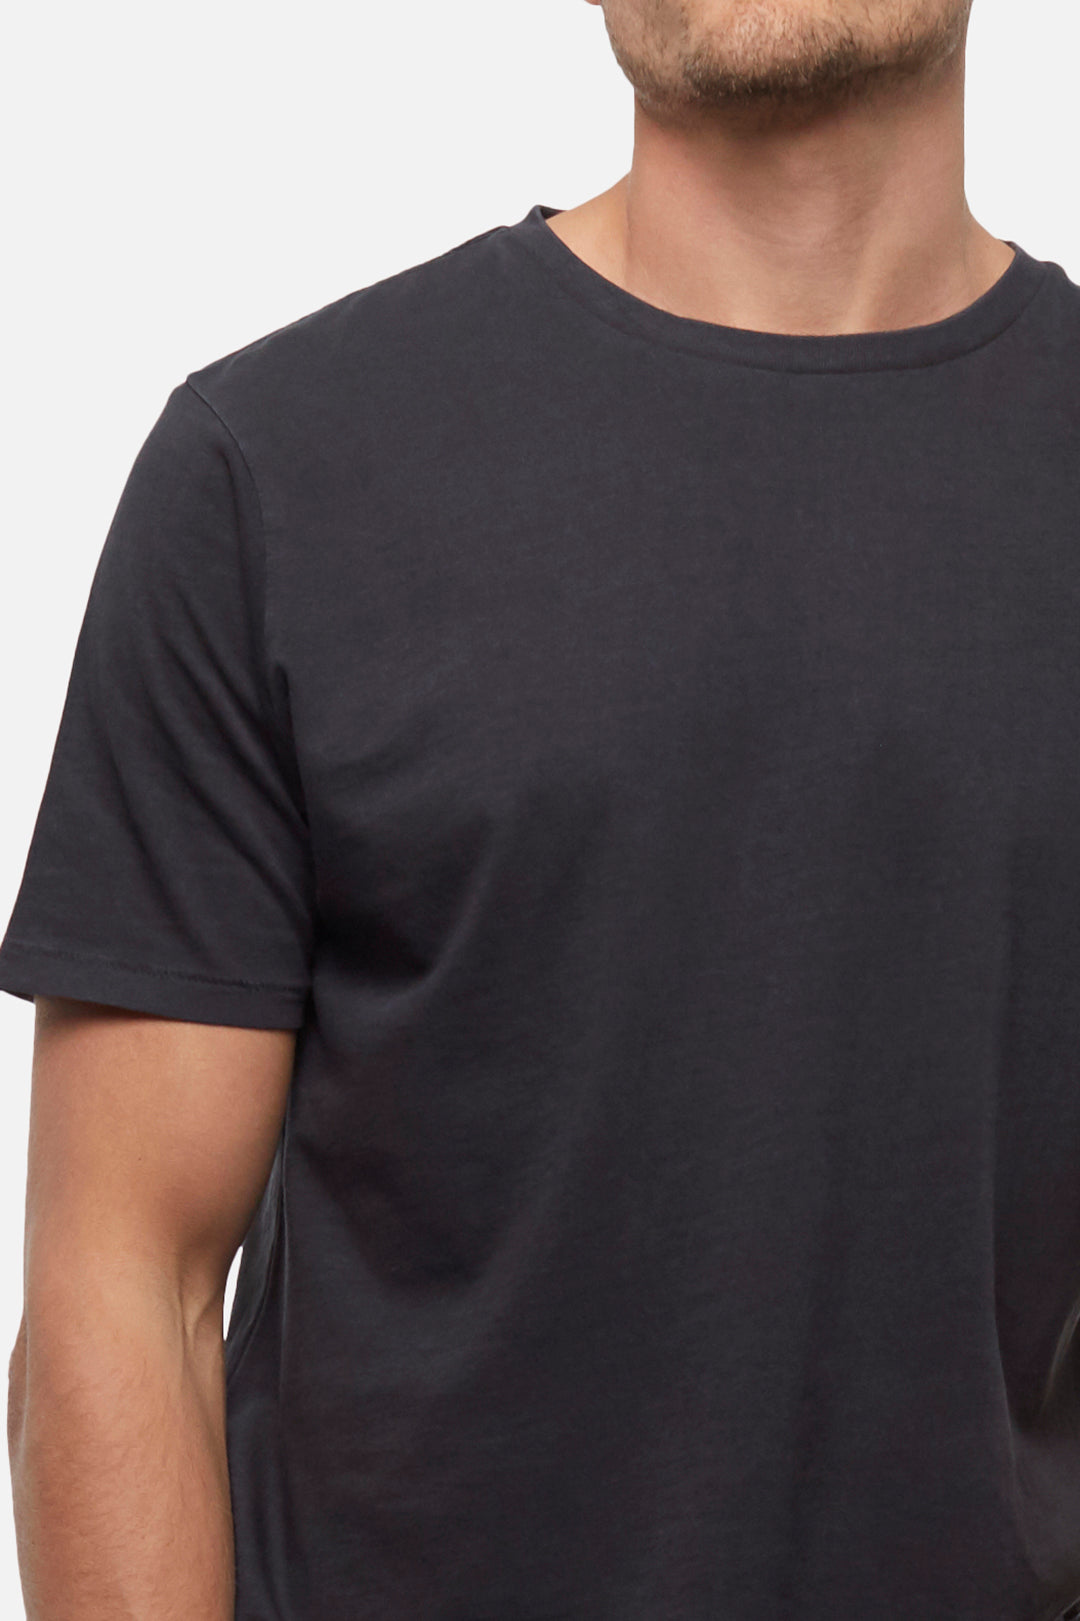 The Basic Classic Tee - PD Black